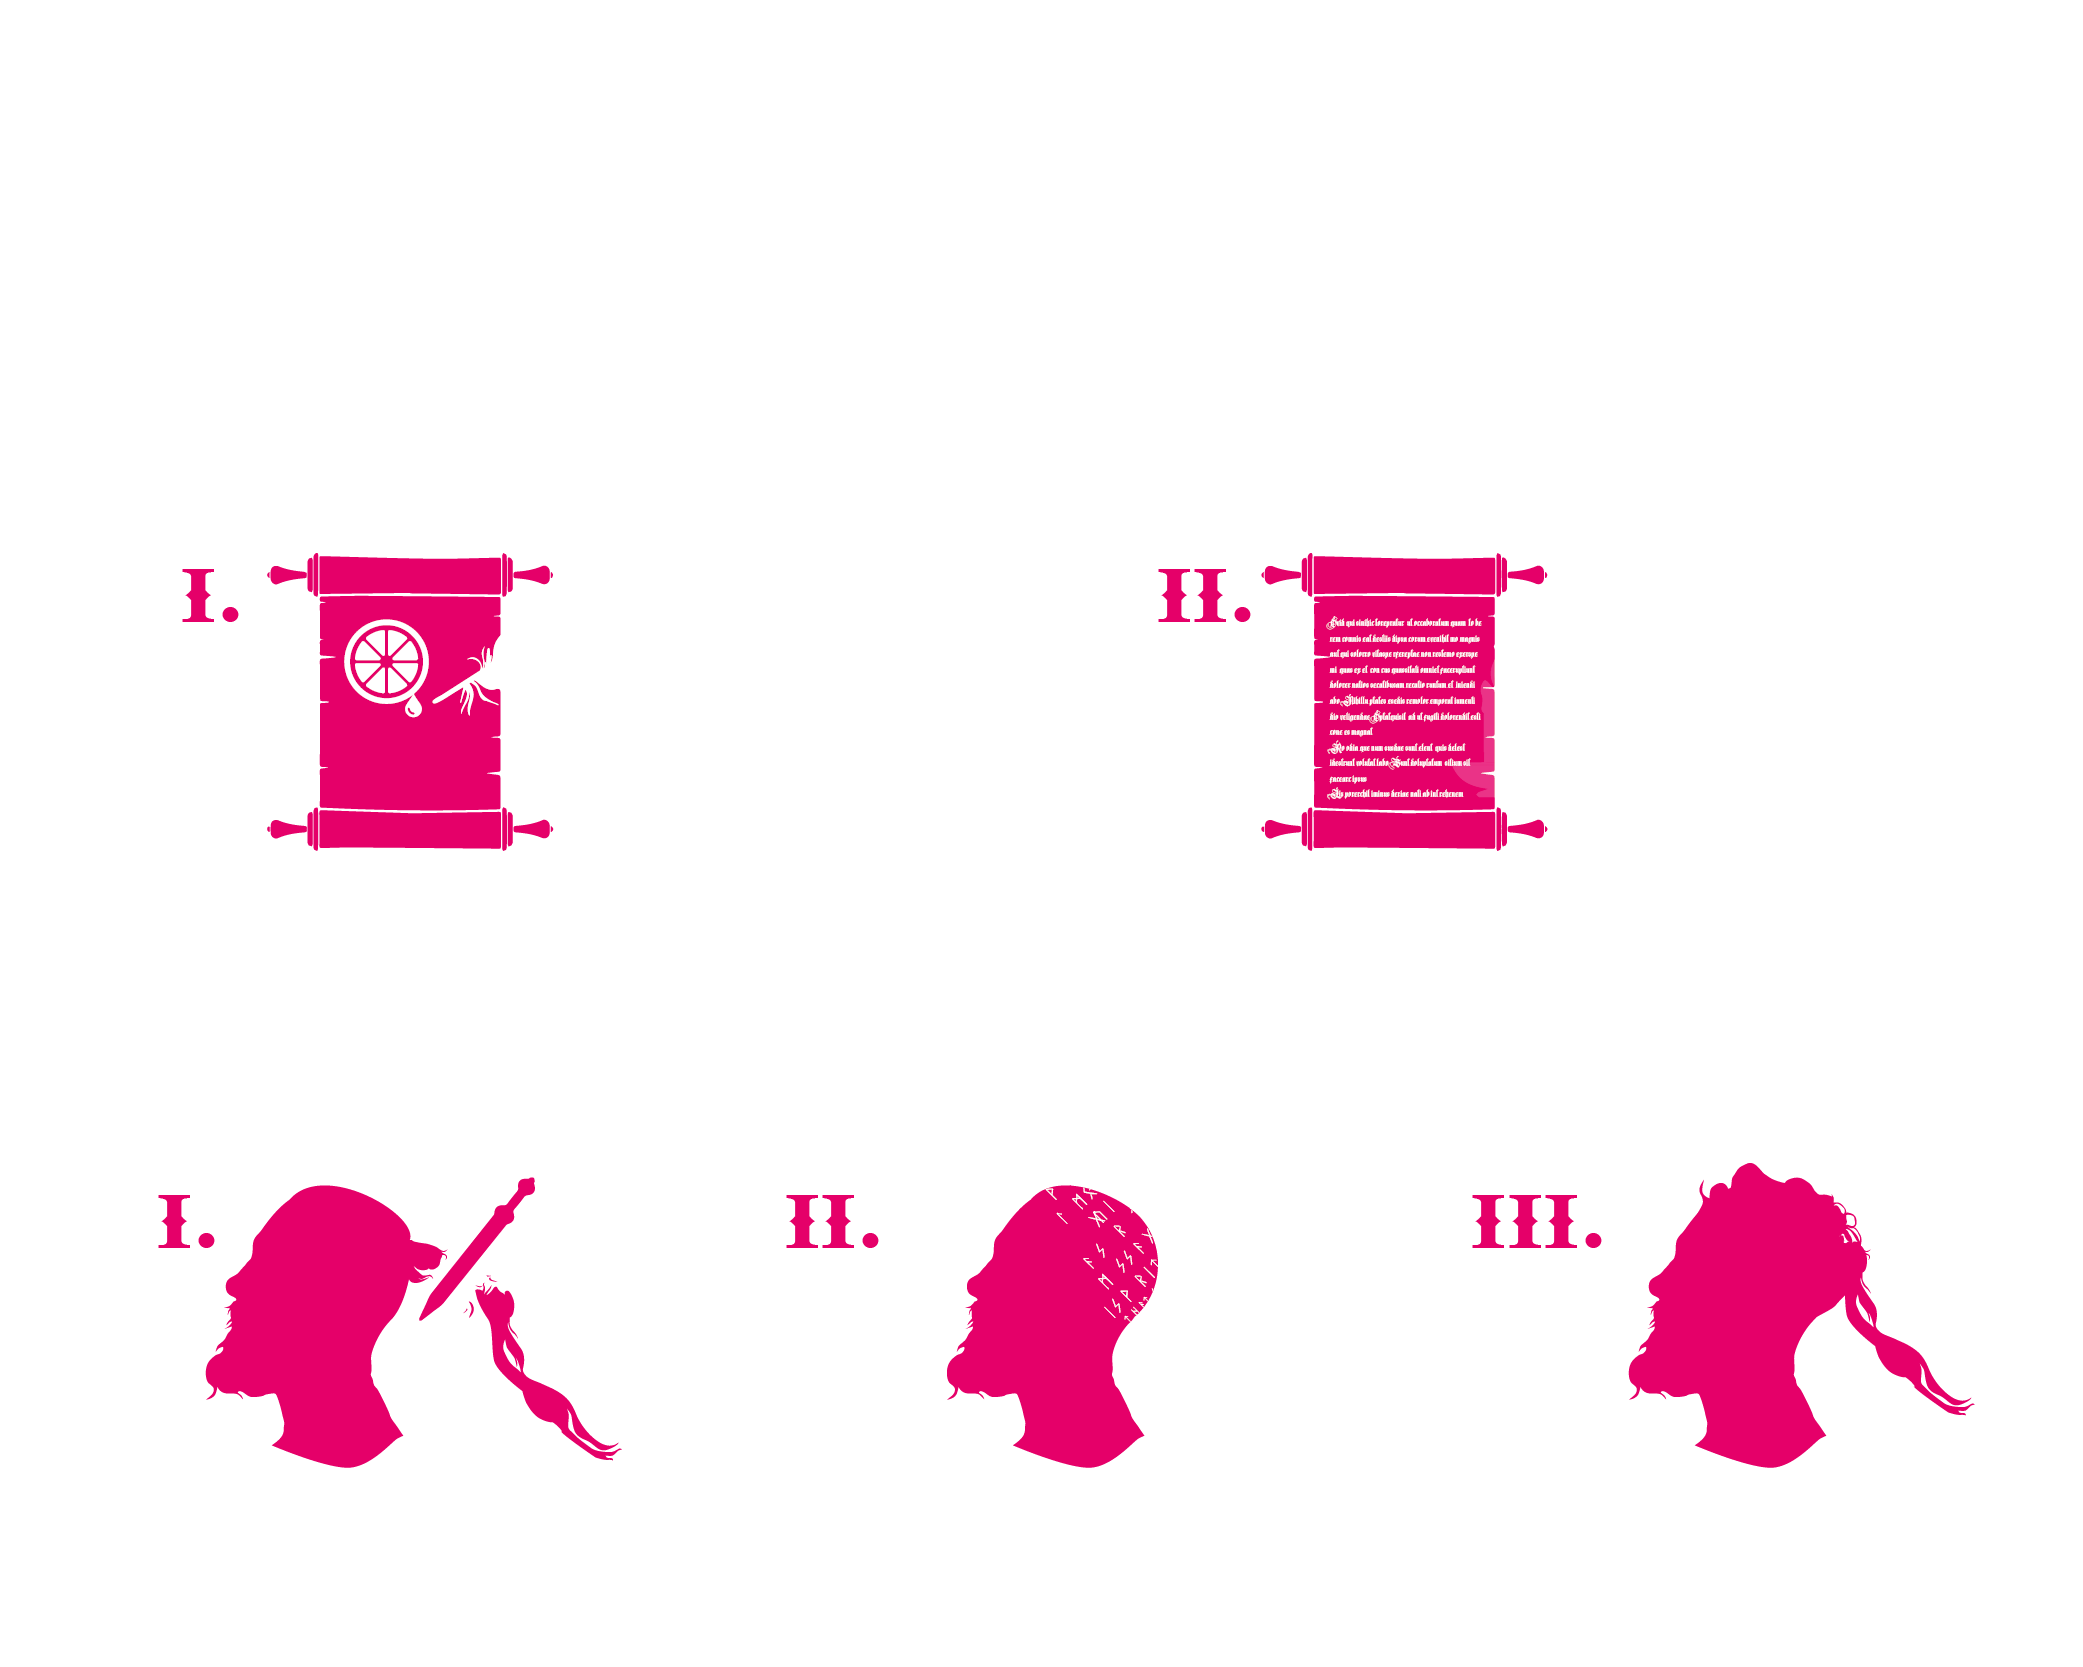 Infographic about steganography